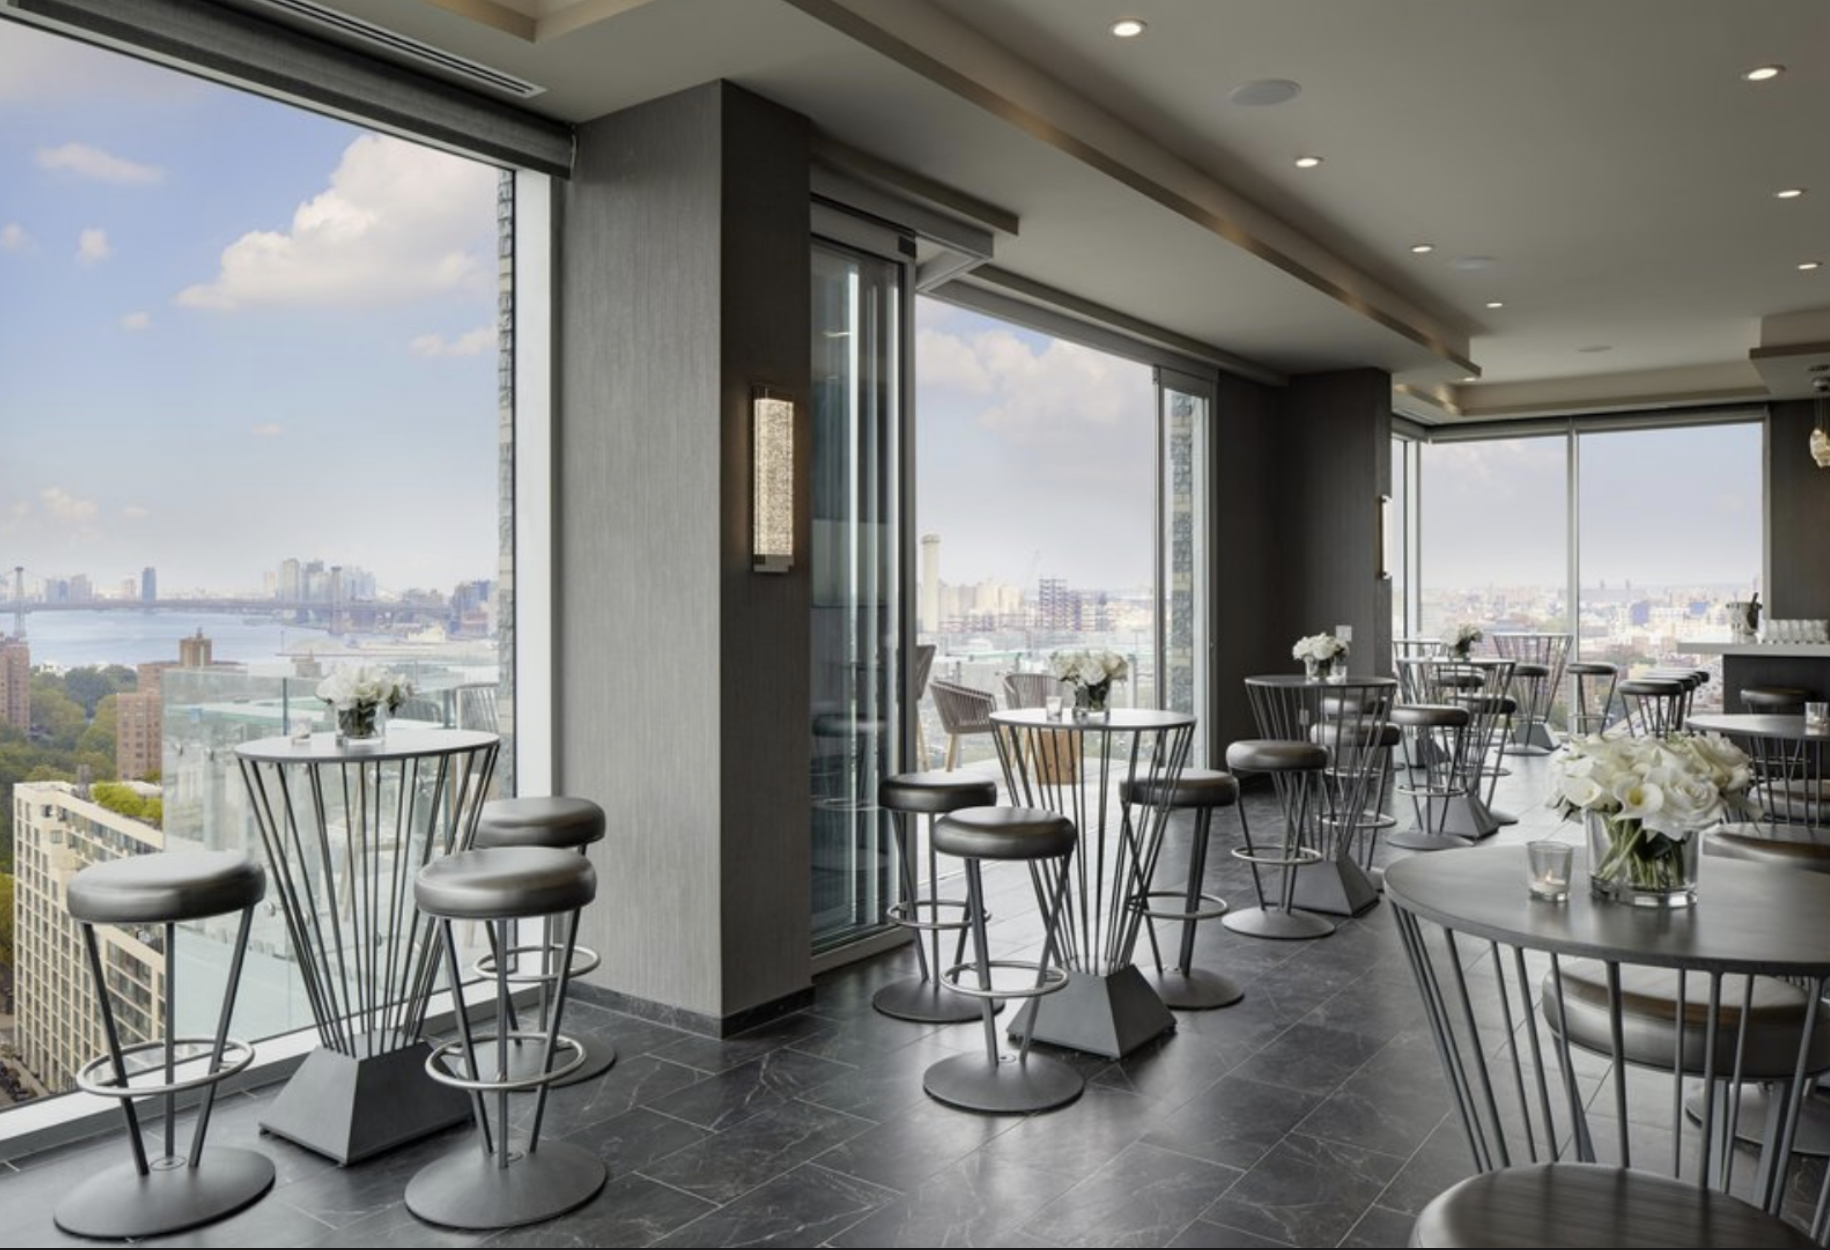 Skyspace Terrace - Located between Dumbo & Downtown Brooklyn. This amazing lounge in the 23rd floor of a hotel is available to rent for private events with catering and bar service. Extra fee apply.